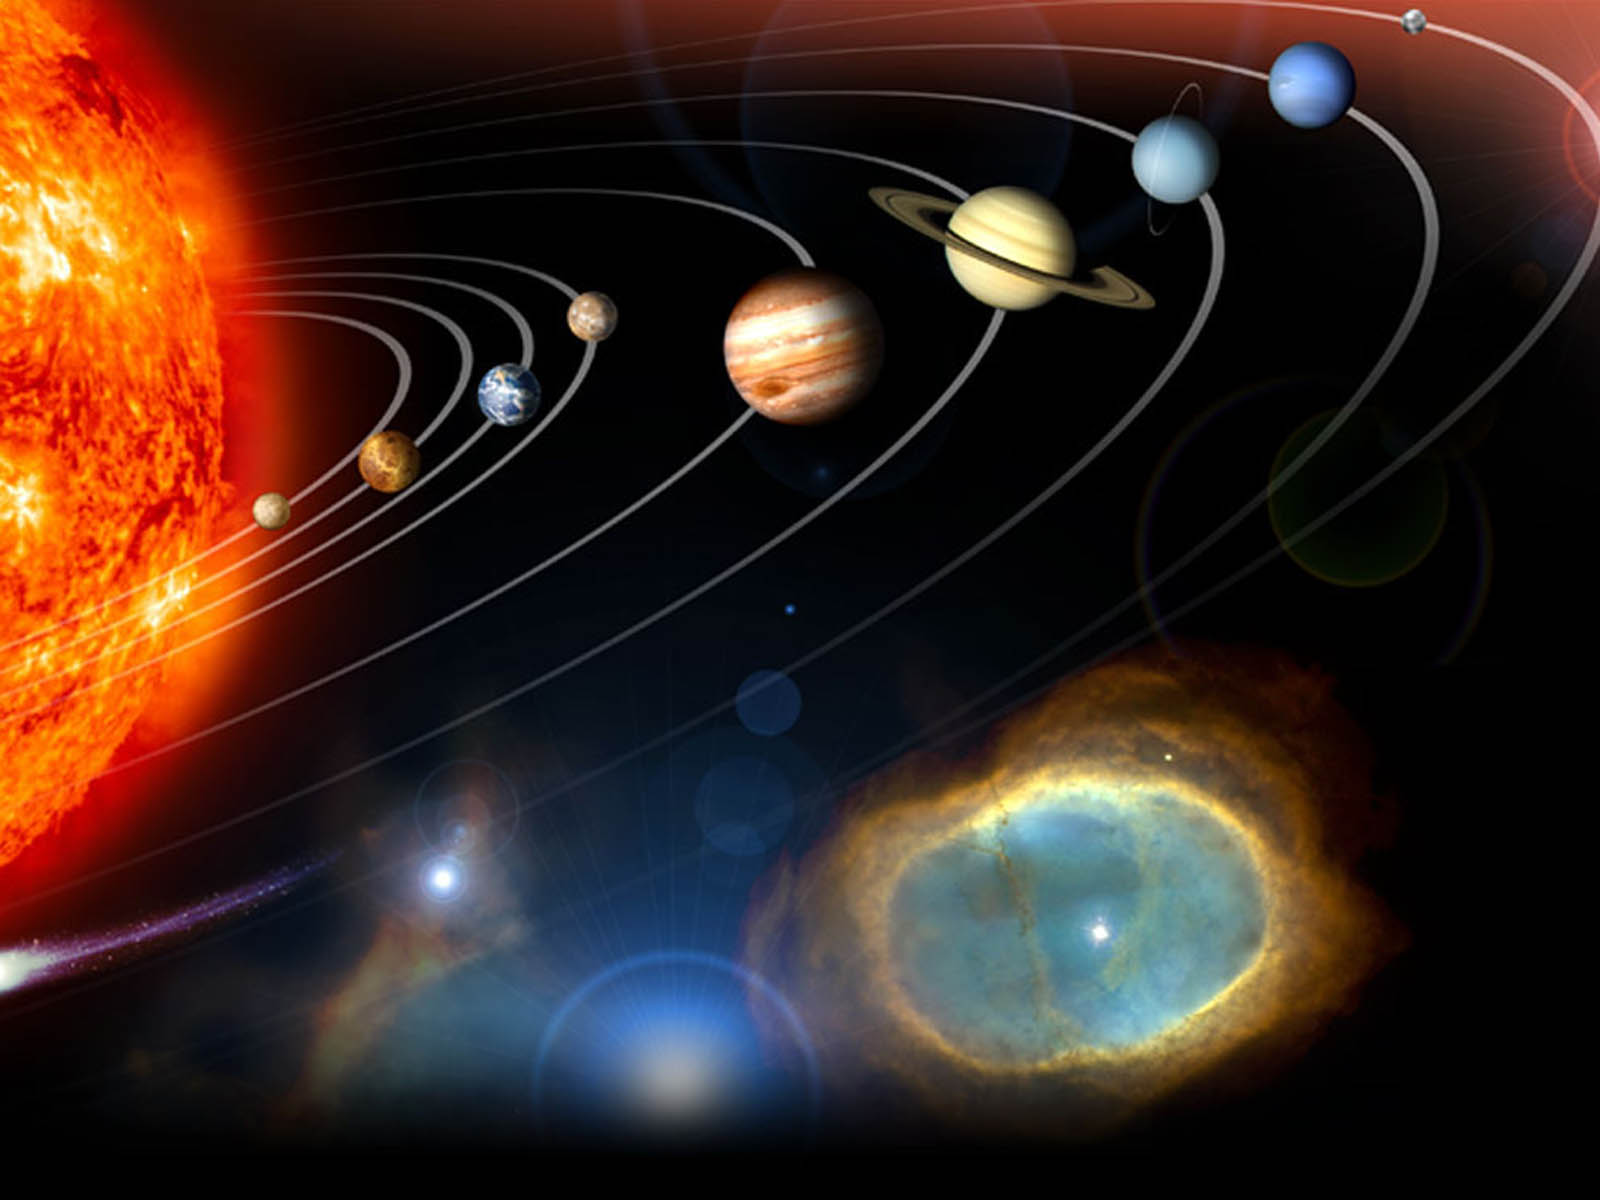 solar system wallpaper planets - photo #14